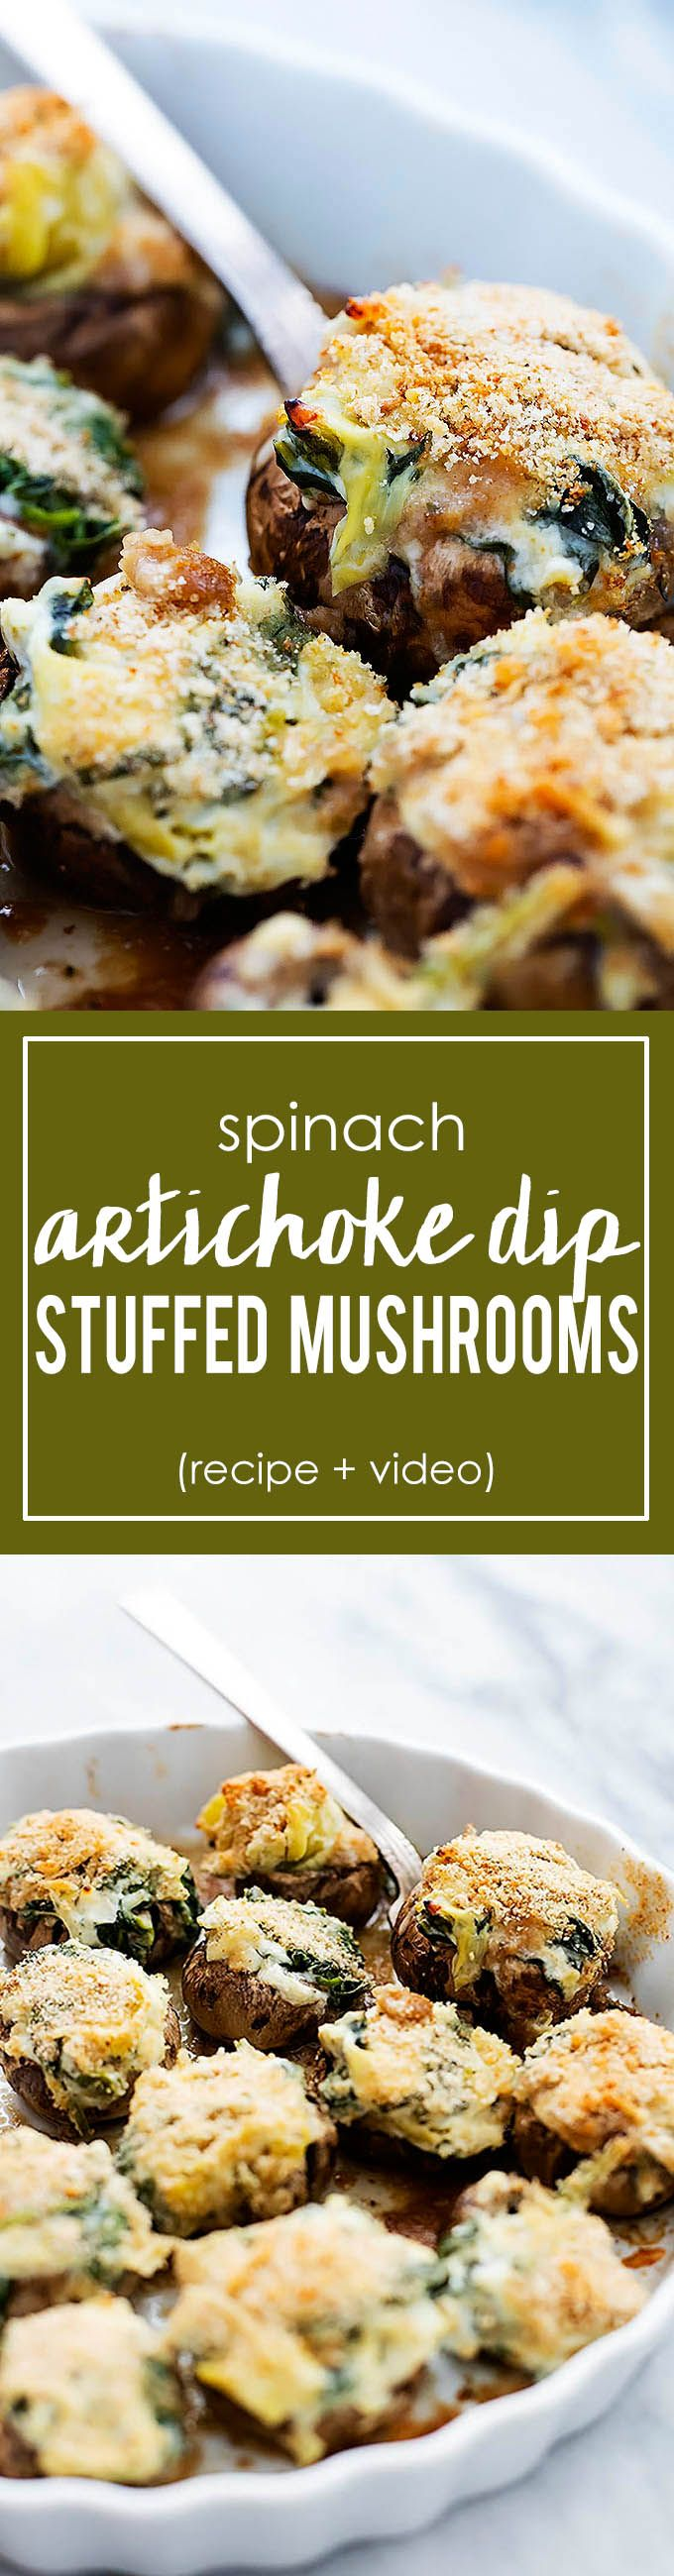 Spinach Artichoke Dip Stuffed Mushrooms | Creme de la Crumb